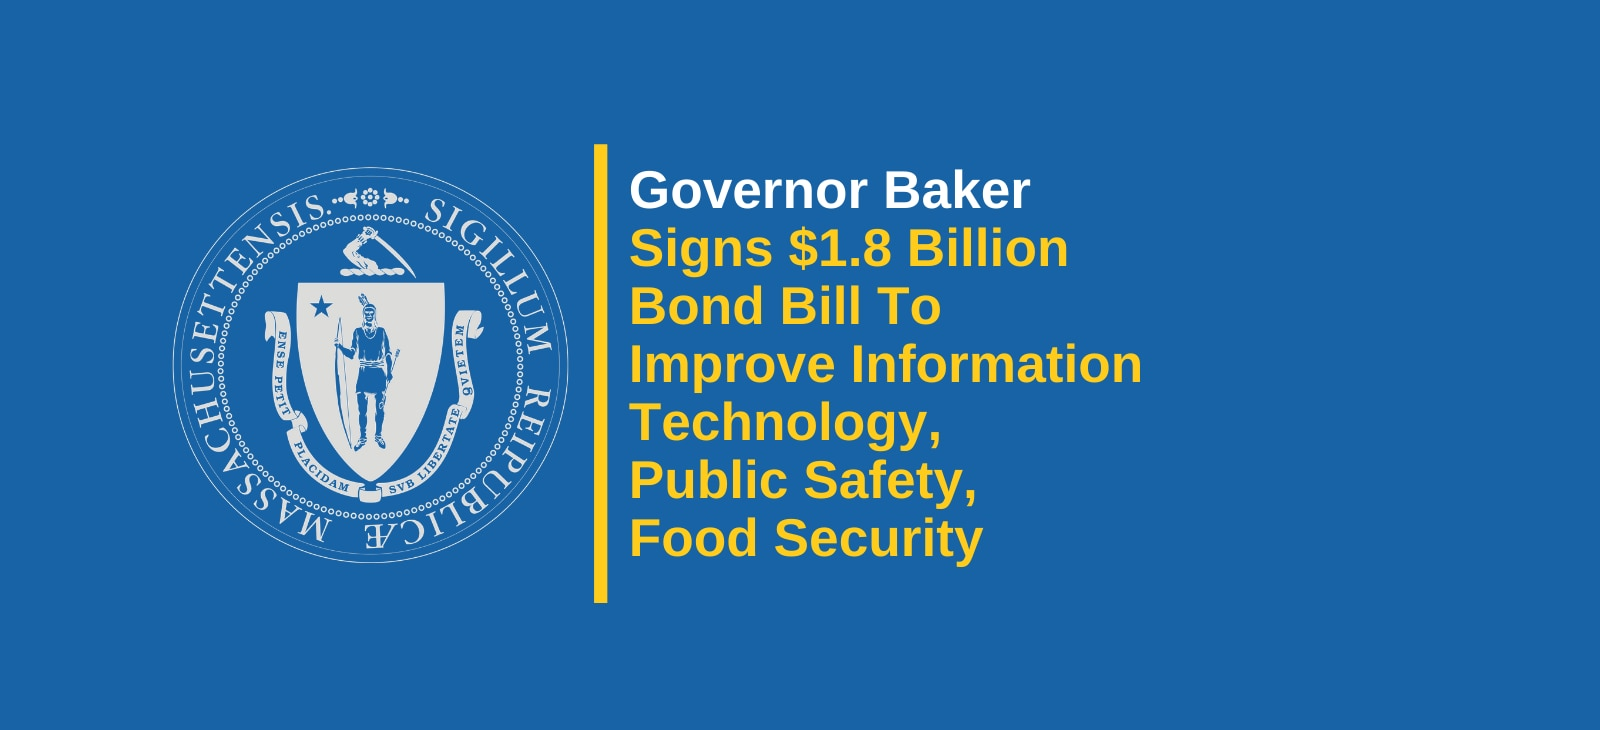 Governor Baker Signs $1.8 Billion Bond Bill to Improve Information Technology, Public Safety and Food Security